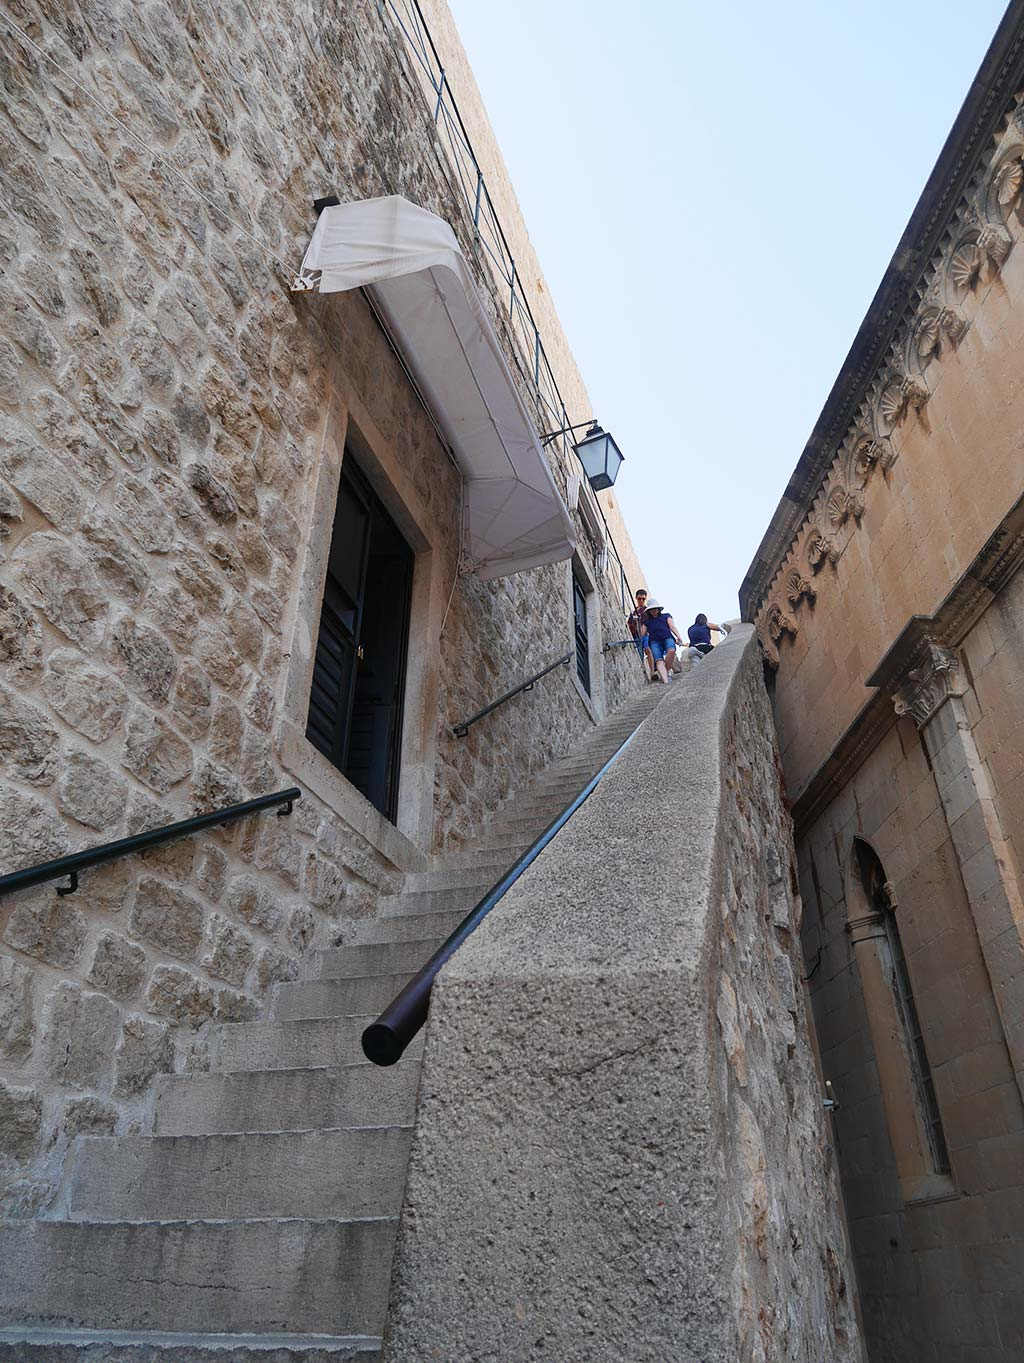 stairs up to the dubrovnik city wall, croatia | Laugh Travel Eat